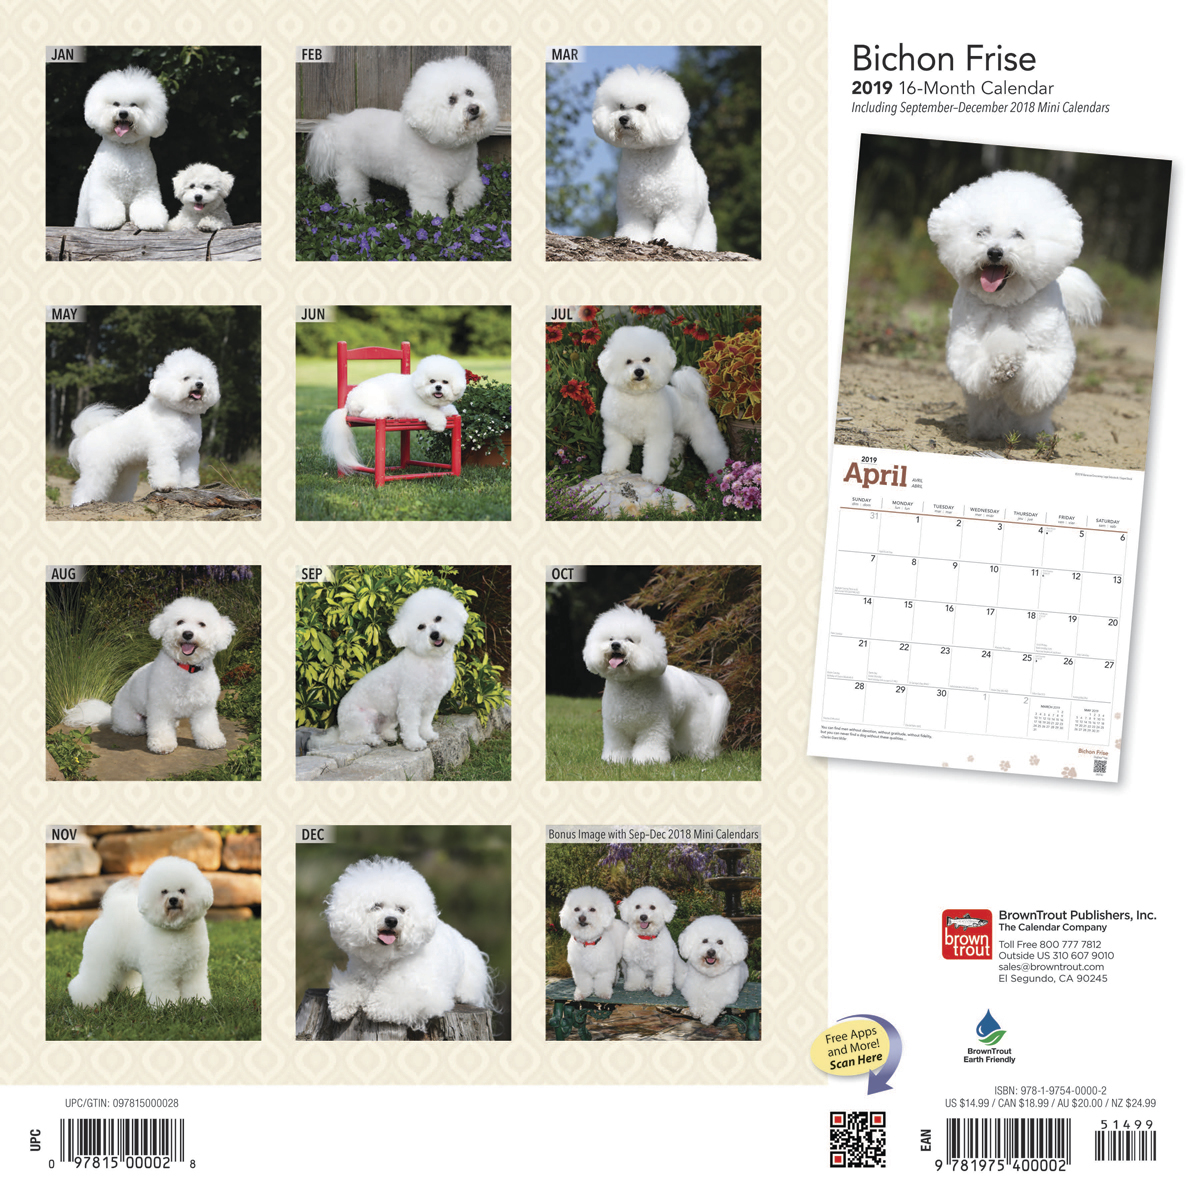 Bichon Frise 2019 Square Wall Calendar by Inc Browntrout Publishers image